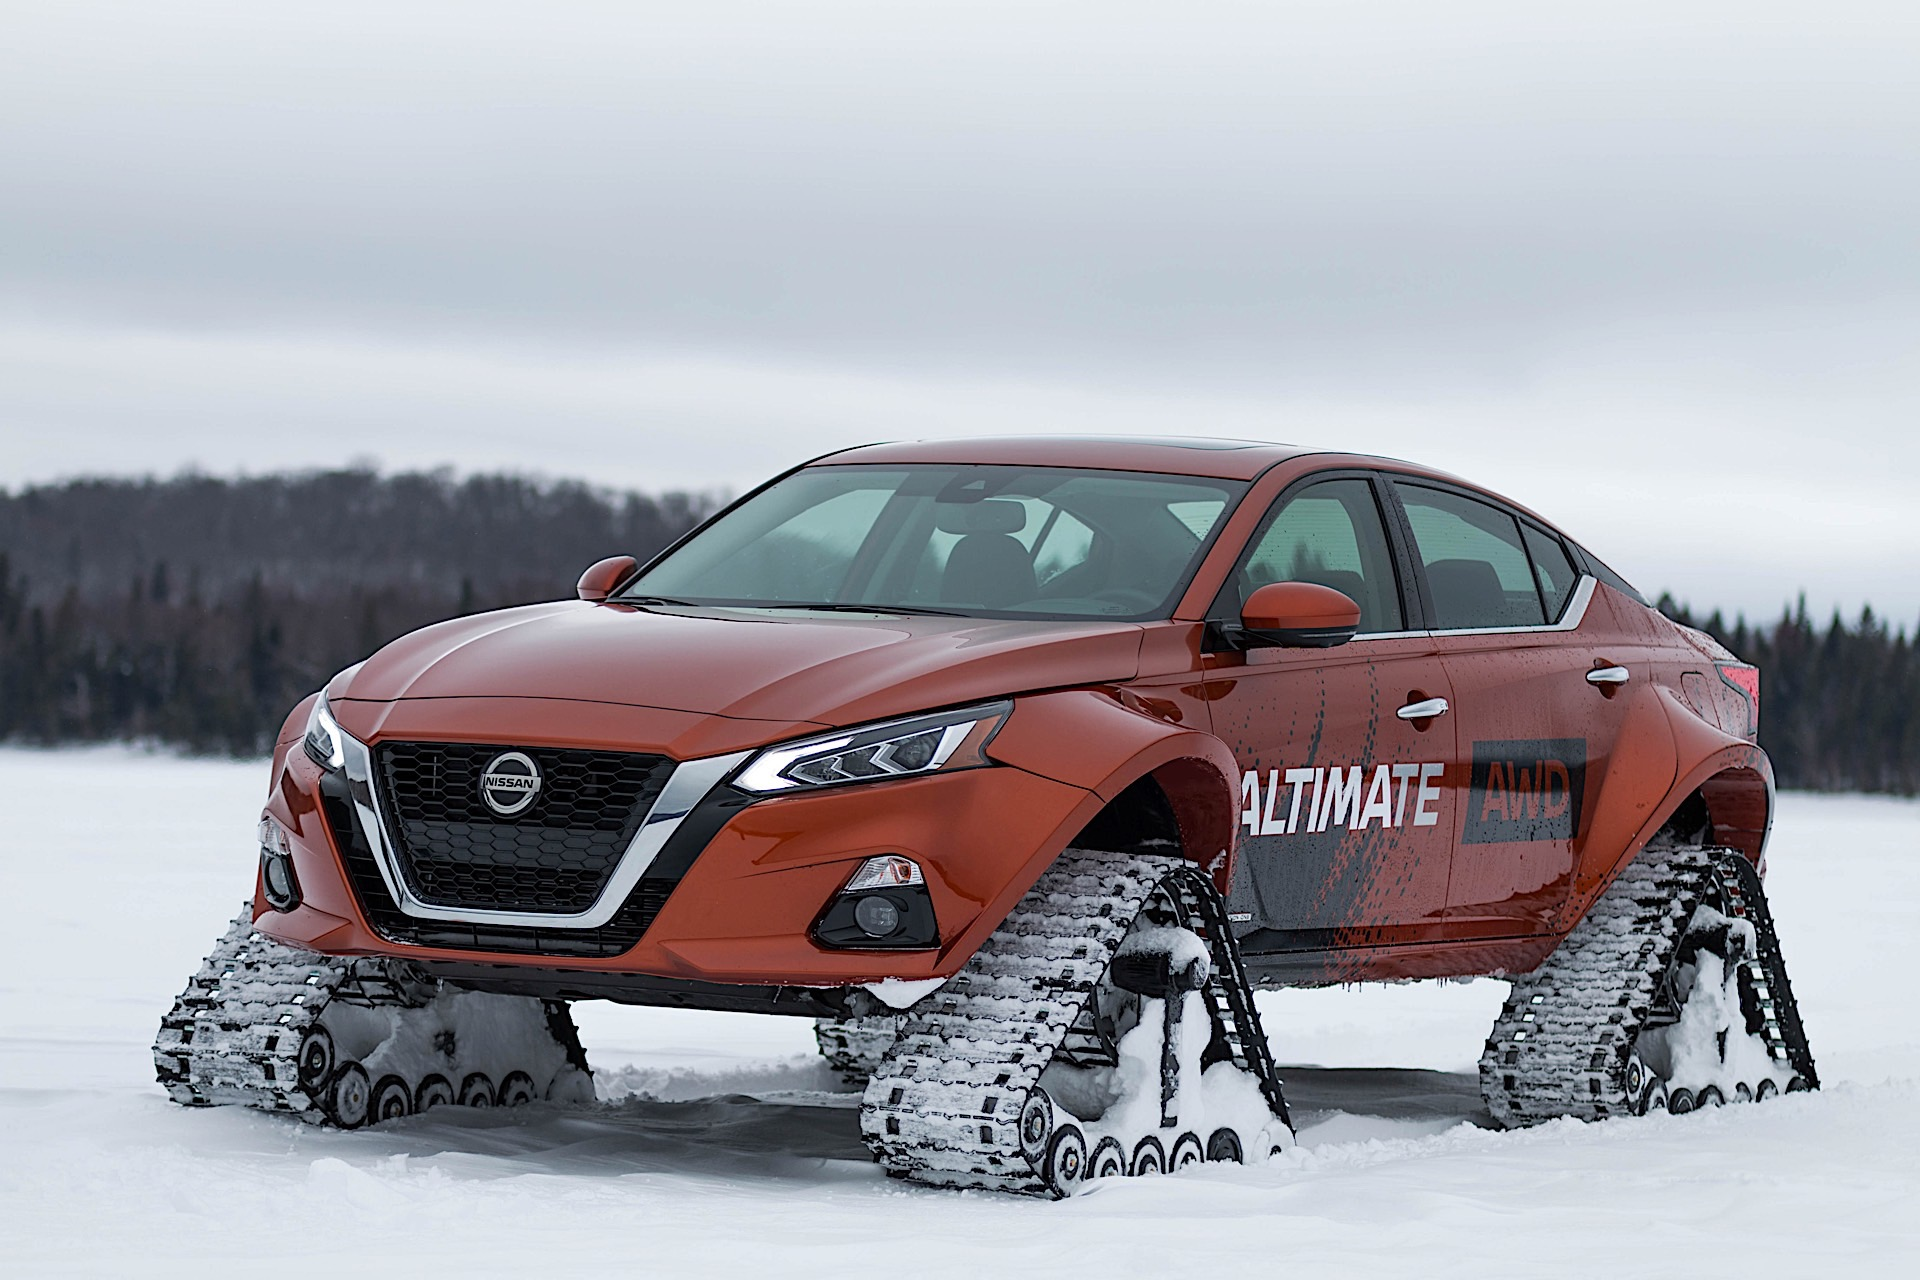 Nissan Altima-te AWD has massively flared fenders over tank-like tracks